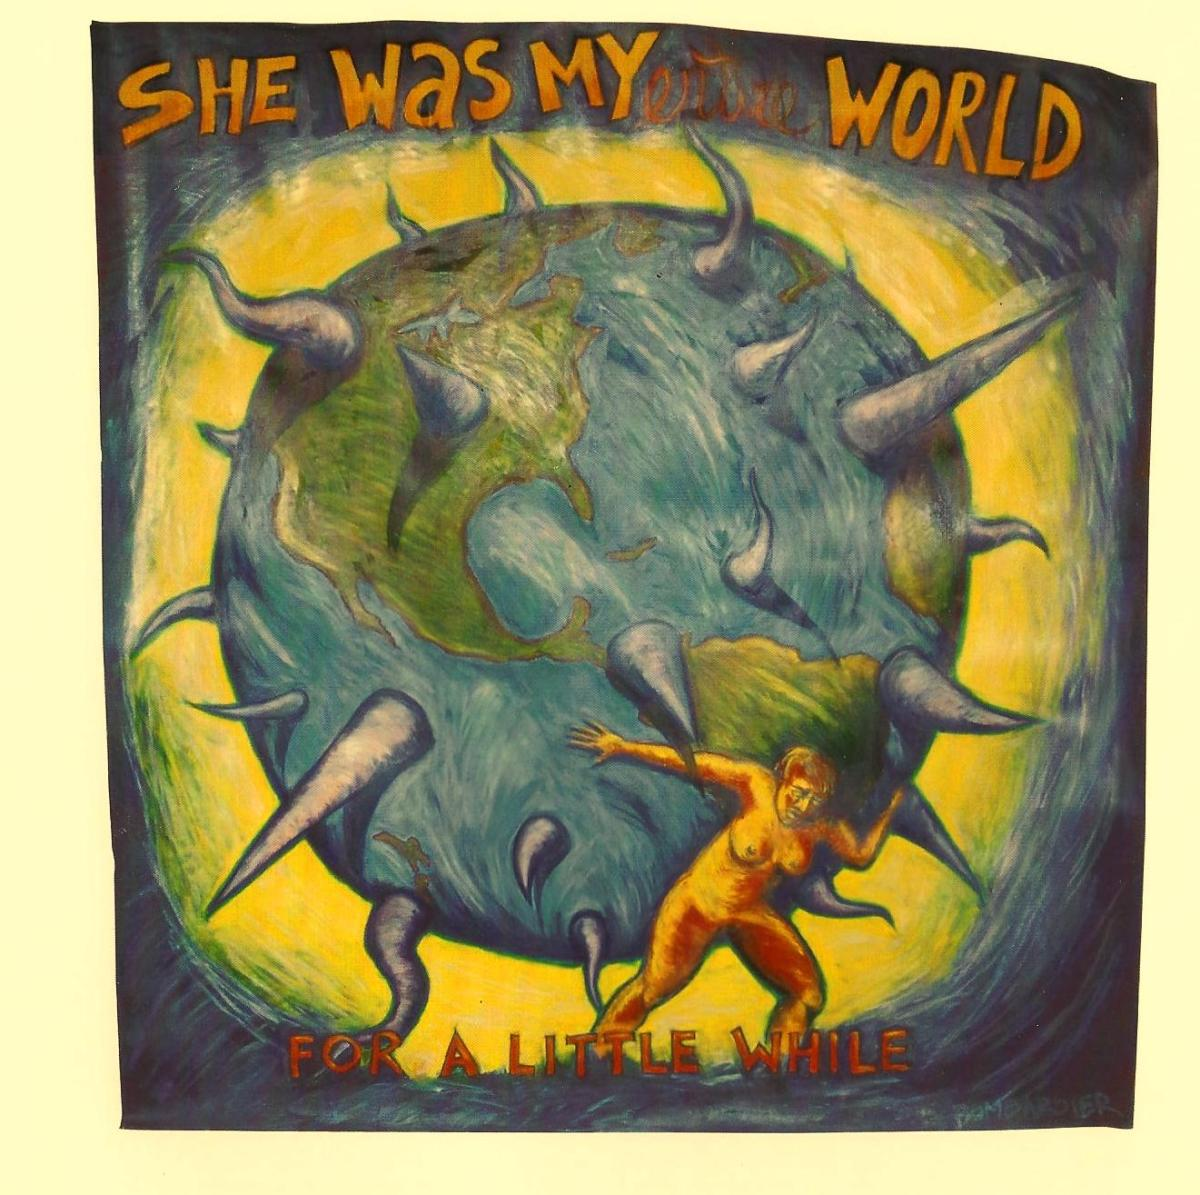 She Was My Entire World_by Cooper Lee Bombardier.jpg